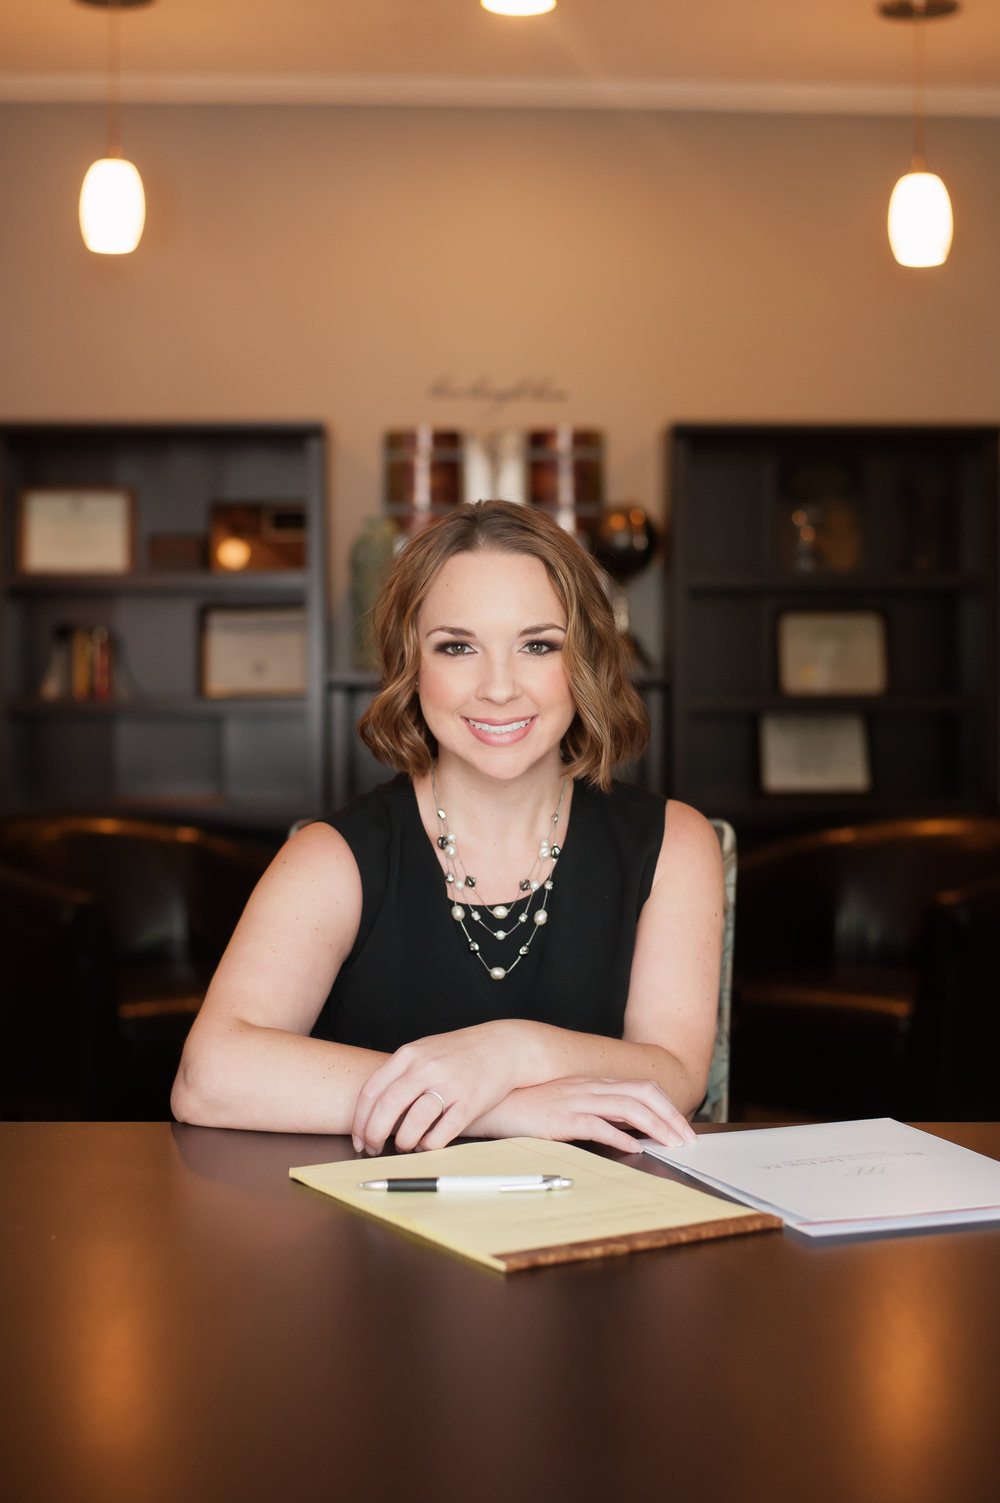 Jenna Houser from The Houser Law Firm, P.A. Located in Jacksonville, FL focuses exclusively on family law.